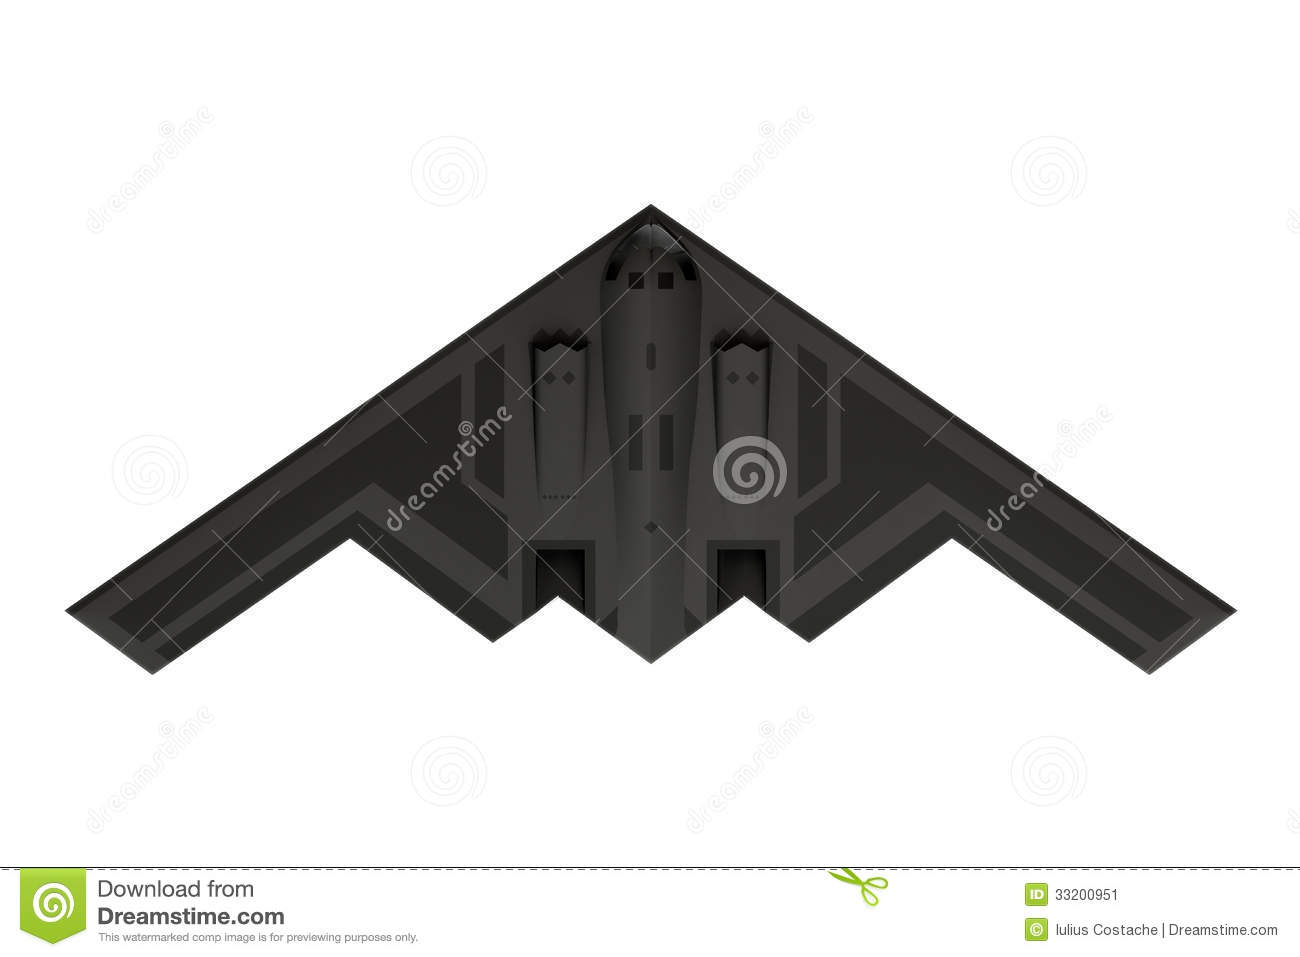 Stealth bomber clipart #10